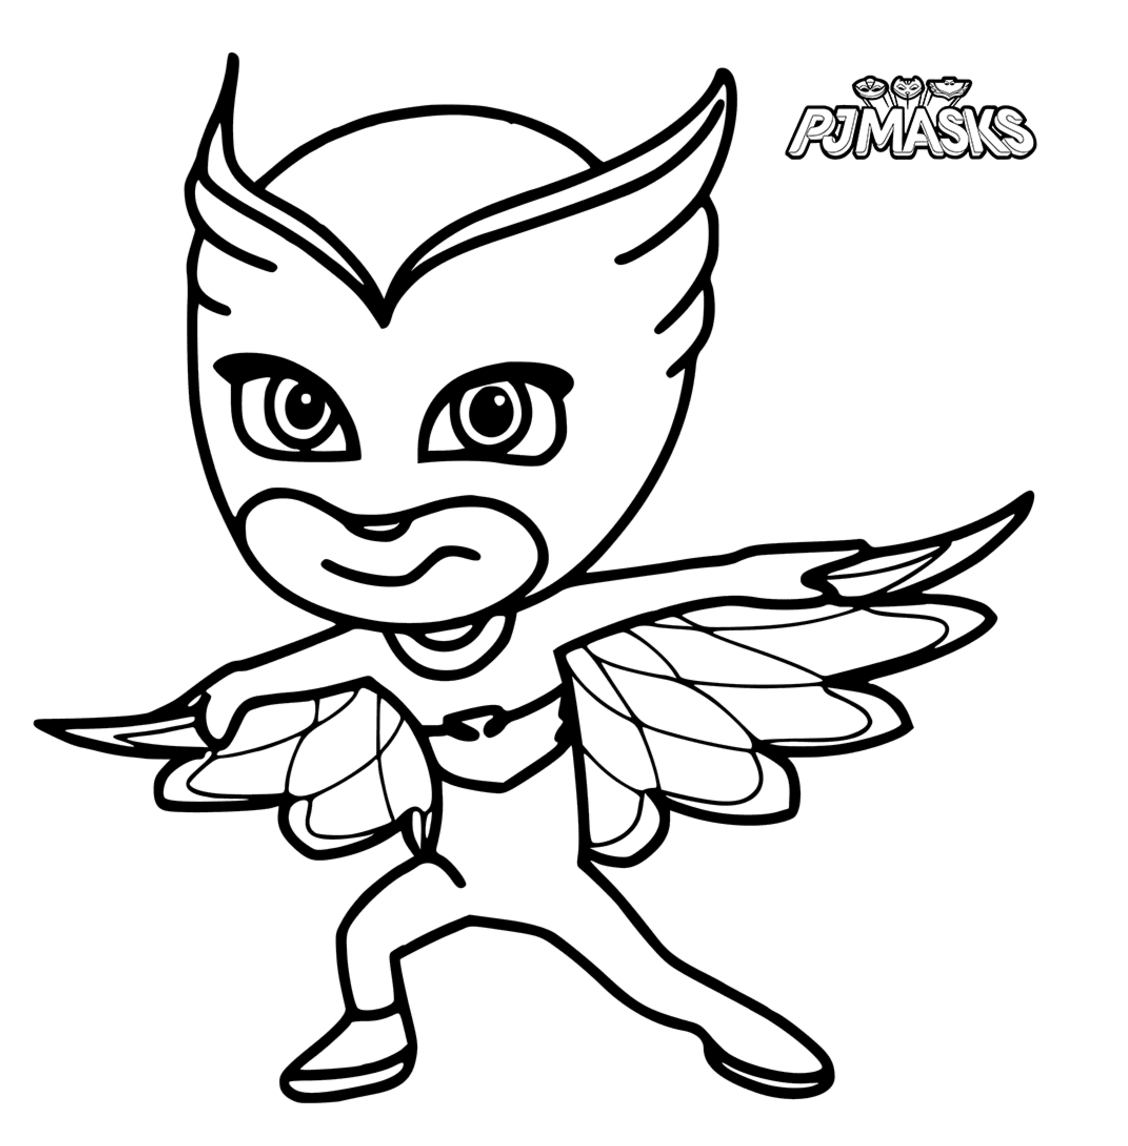 coloring masks pj masks coloring pages to download and print for free coloring masks 1 1